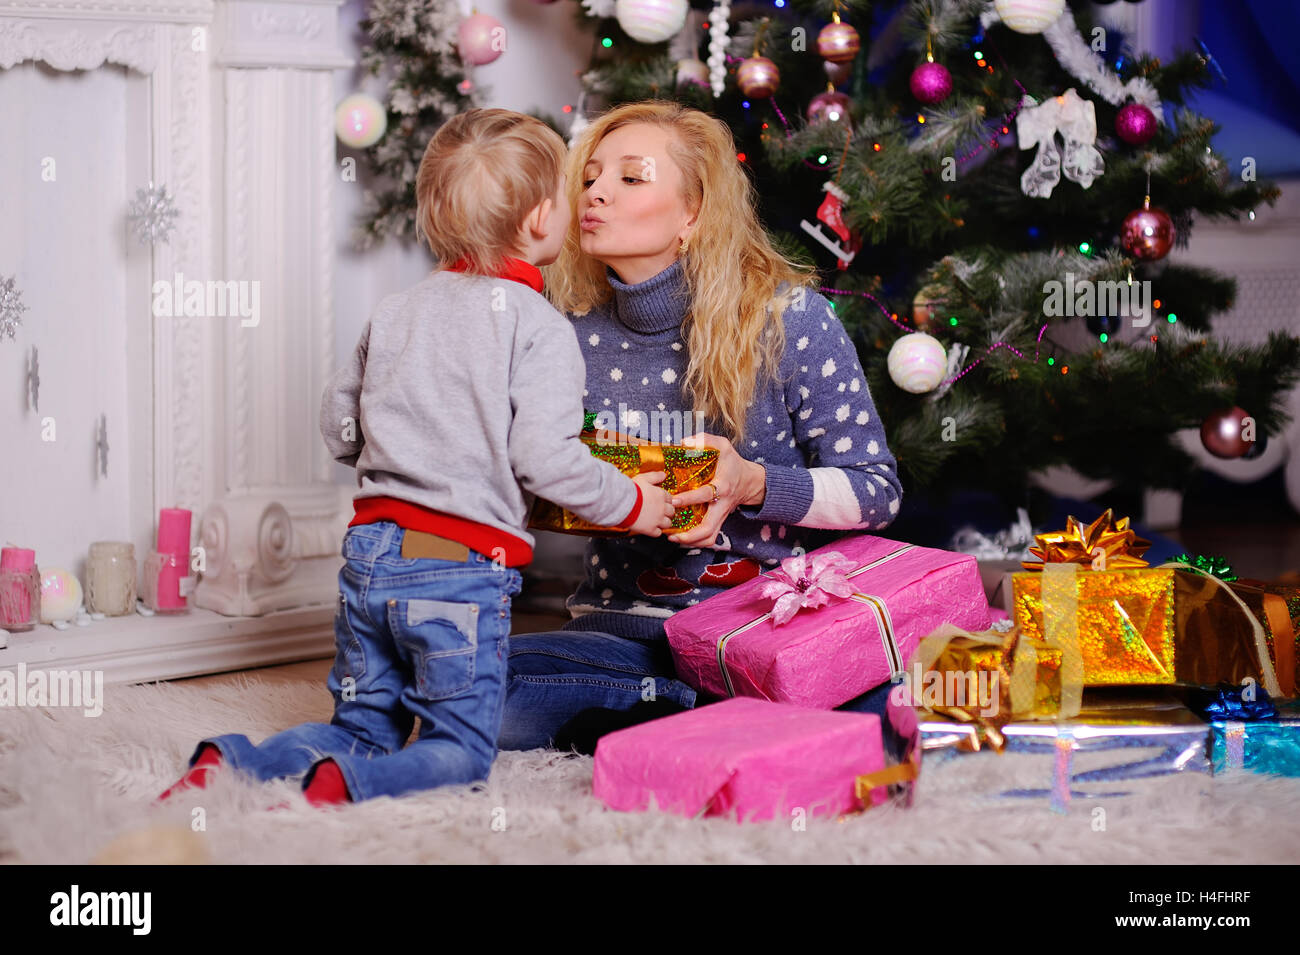 Christmas Gifts For Mom From Son.Mom Gives A Small Child A Christmas Gift On The Christmas